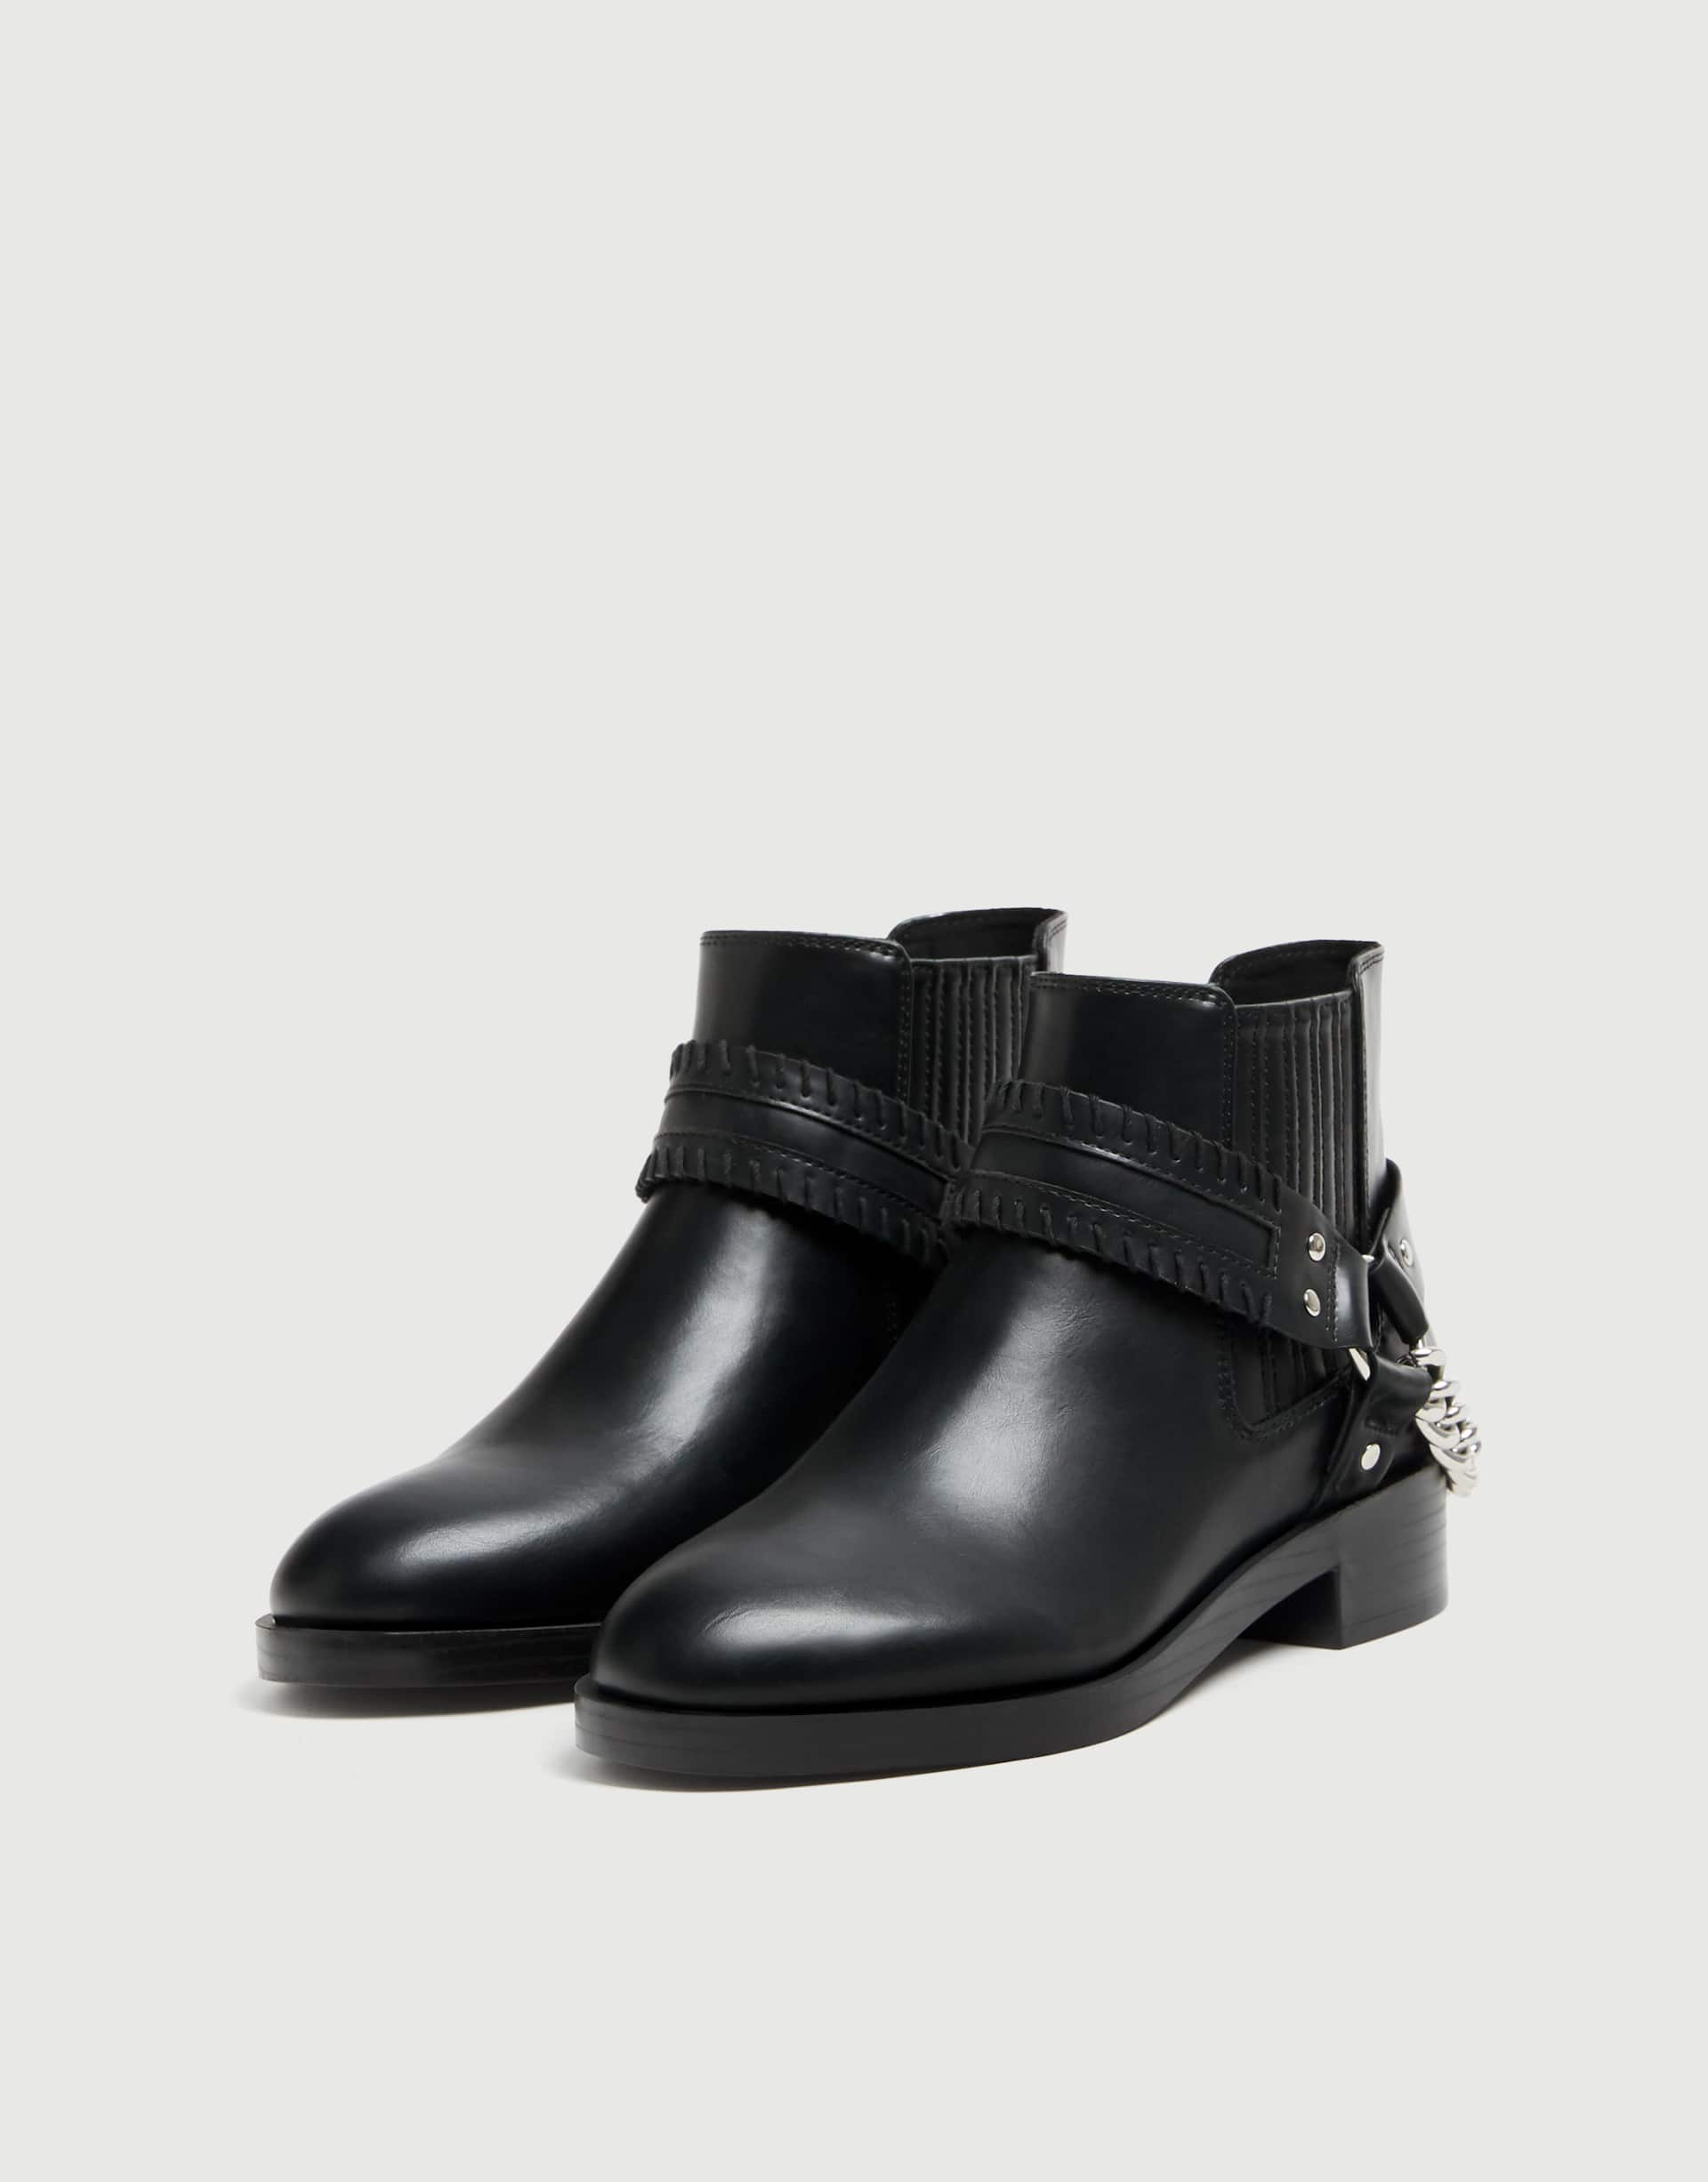 9494dbd1425 Ankle boots with chain detail